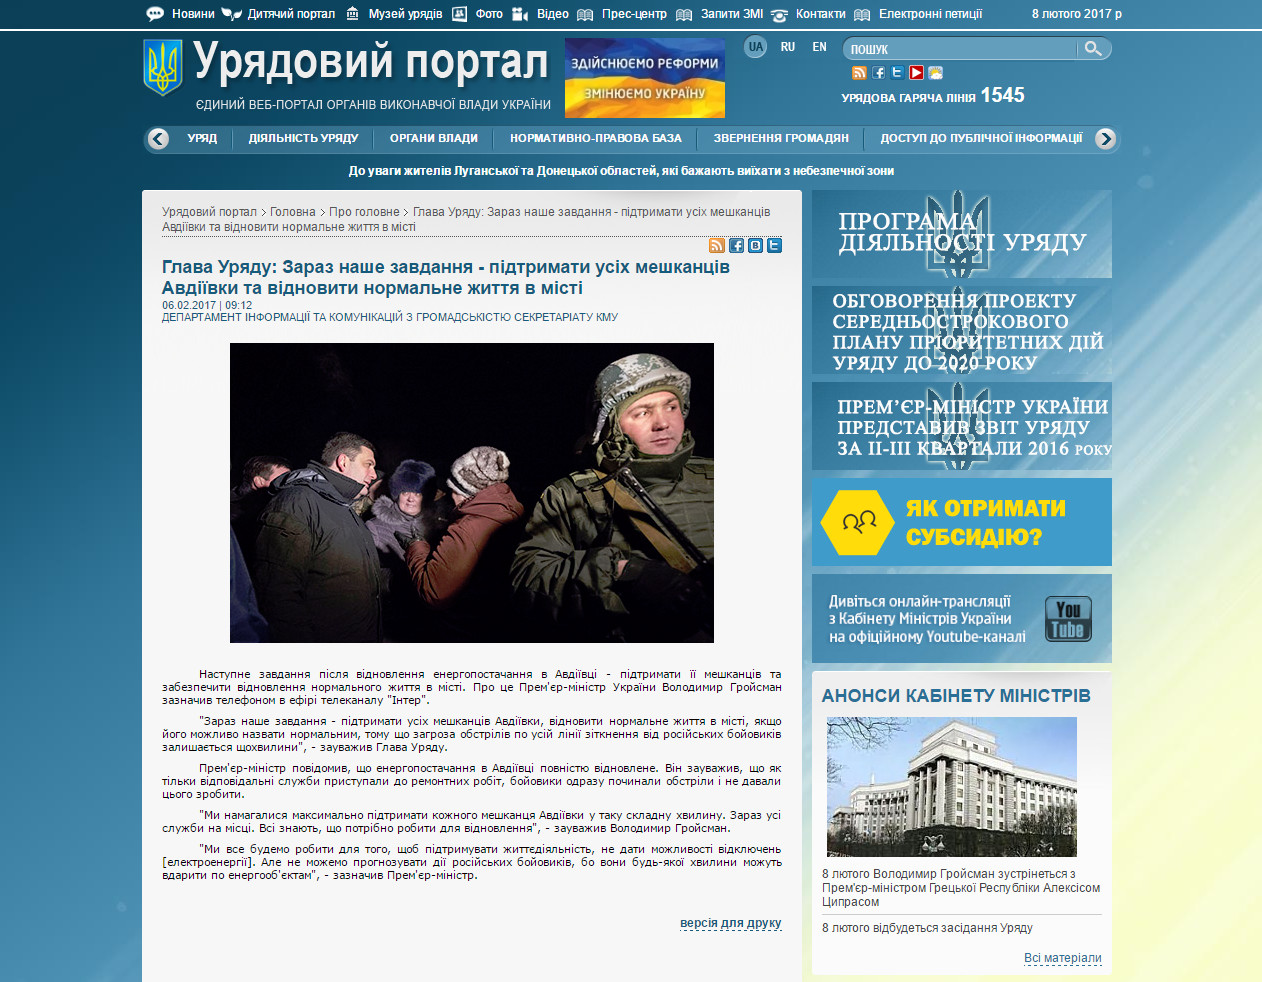 http://www.kmu.gov.ua/control/uk/publish/article?art_id=249713337&cat_id=244274130